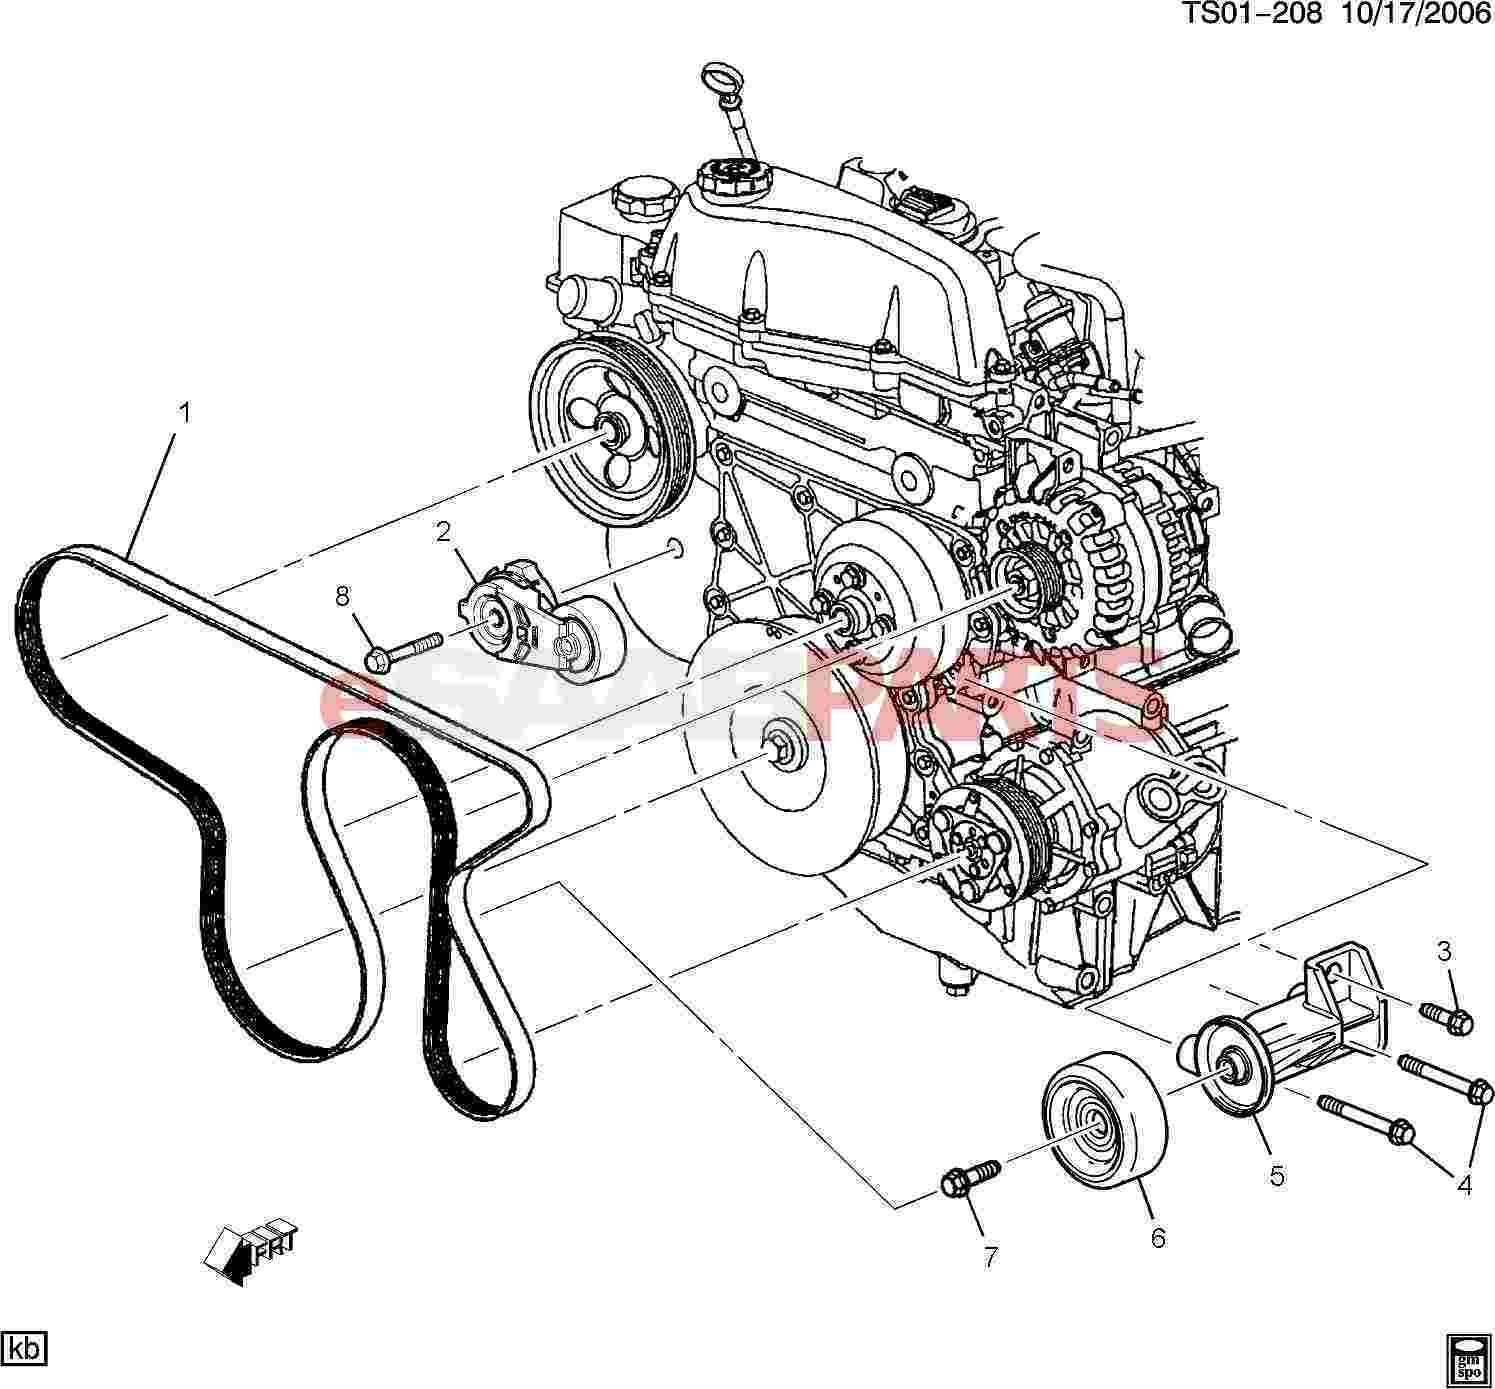 Gmc Sierra Parts Diagram Saab Bolt Hfh M X X Thd O D Mach Of Gmc Sierra Parts Diagram